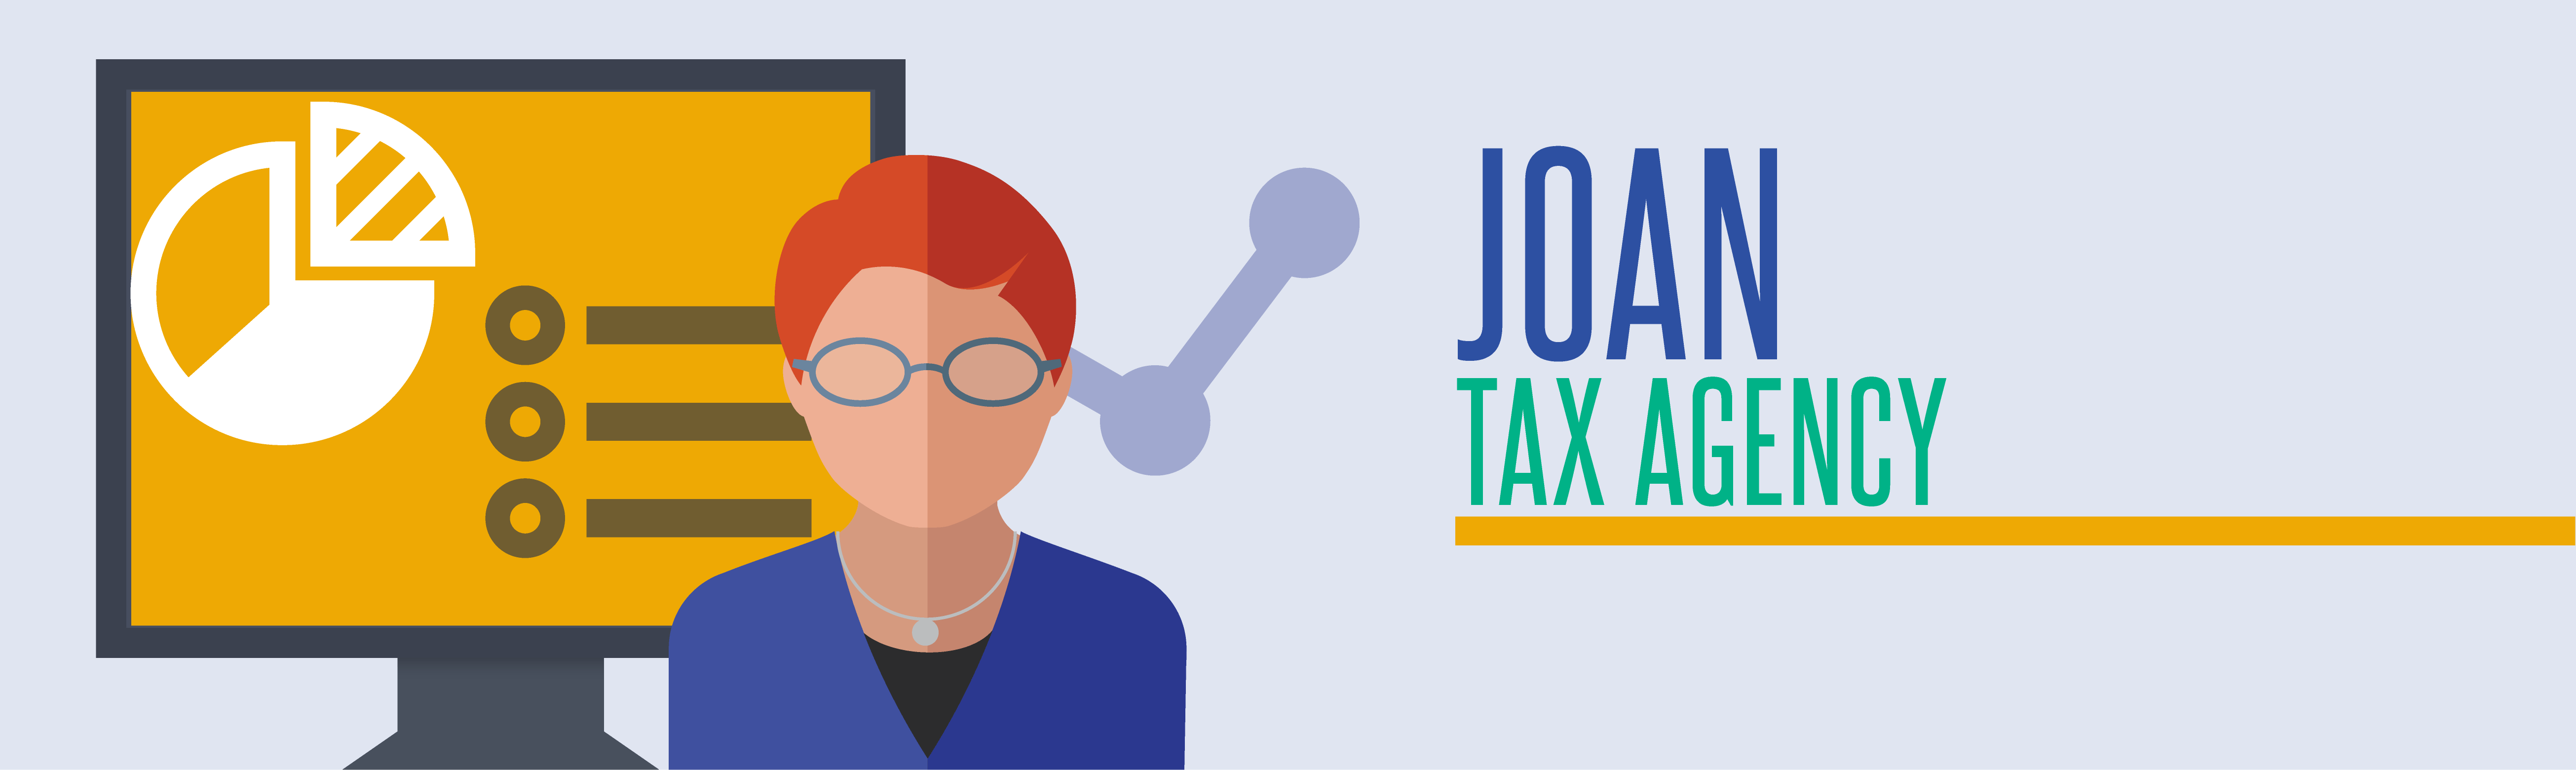 Joan- Tax Agency